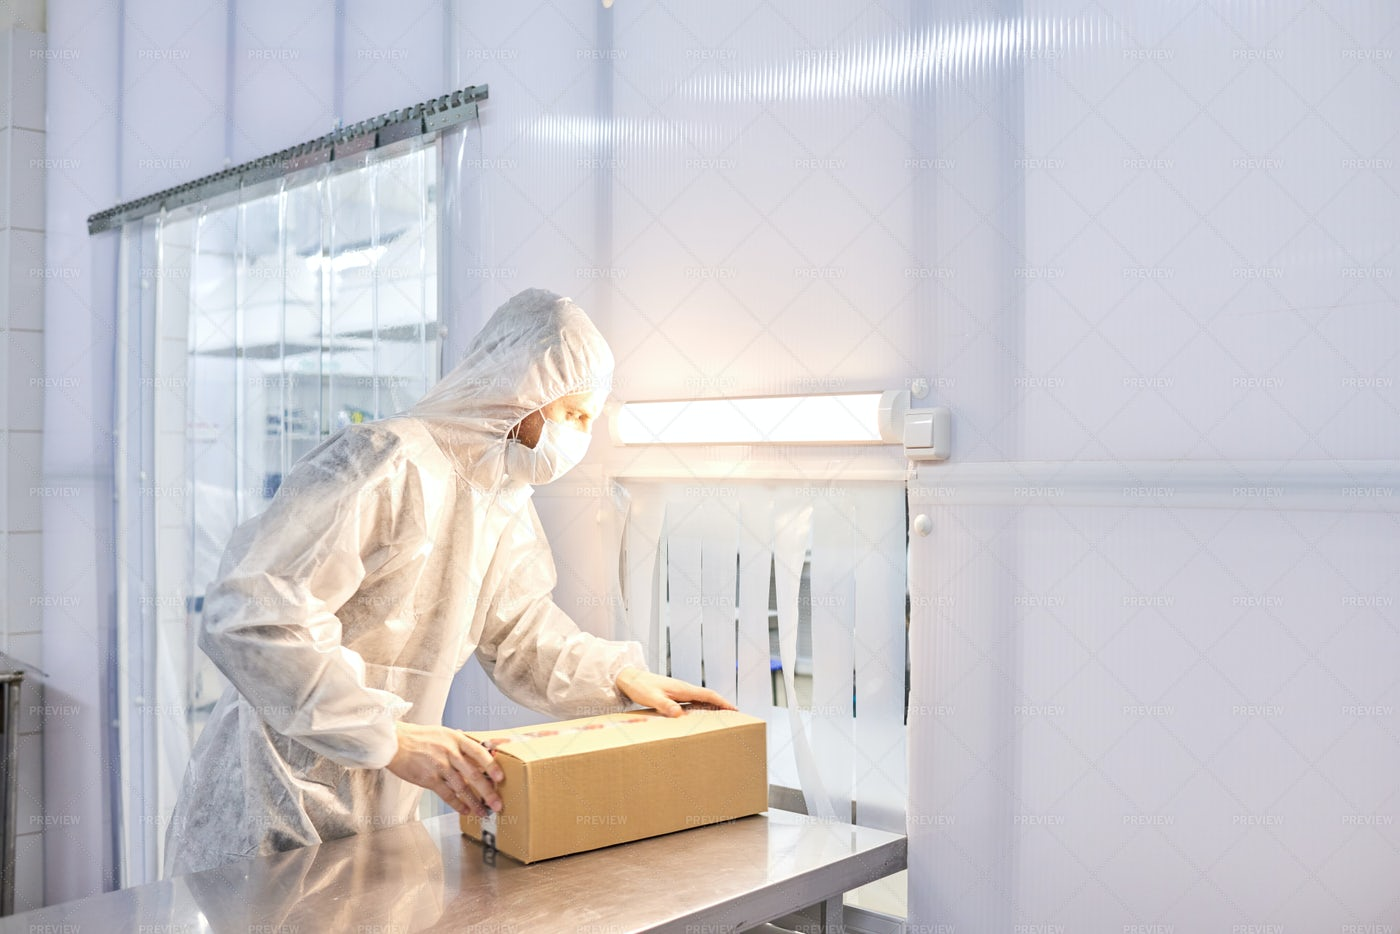 Worker Packing Medicinal Products: Stock Photos